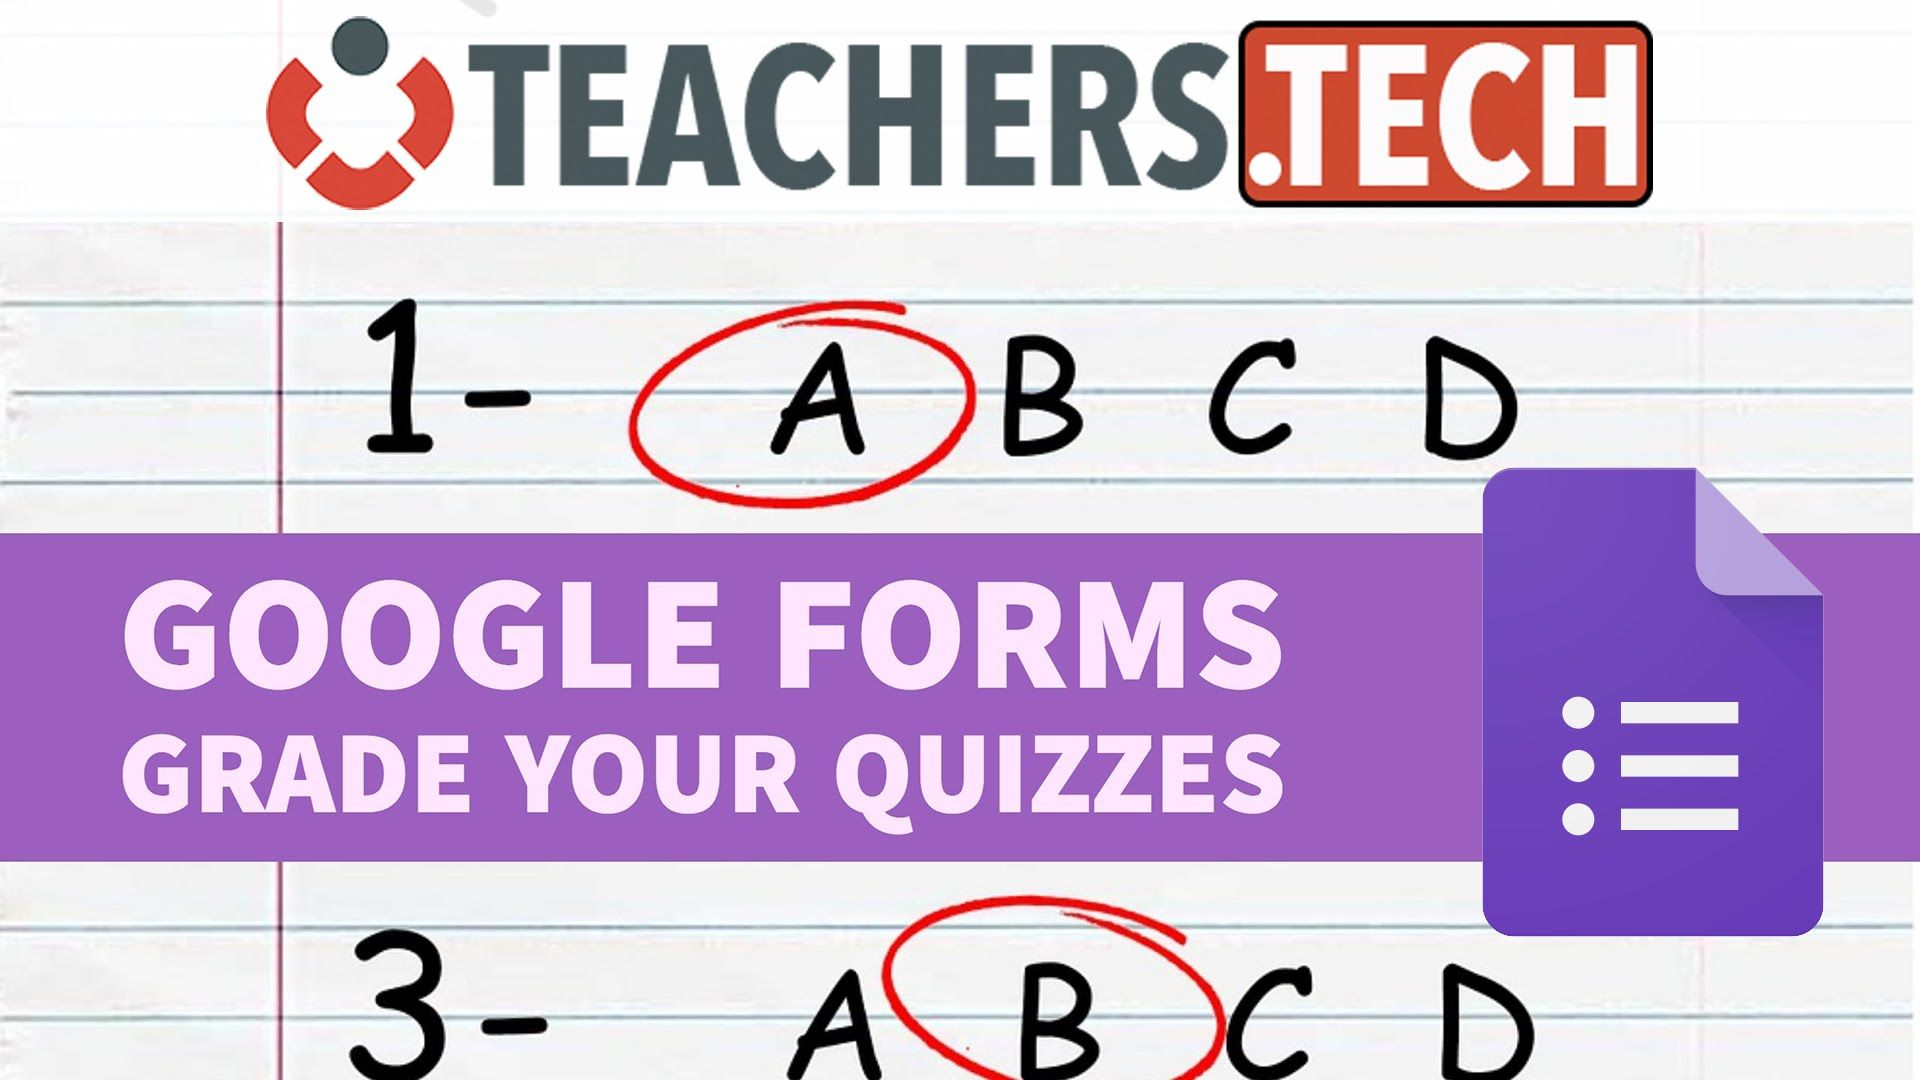 See the Top 5 Tech Tools to Take Control of Your Classroom